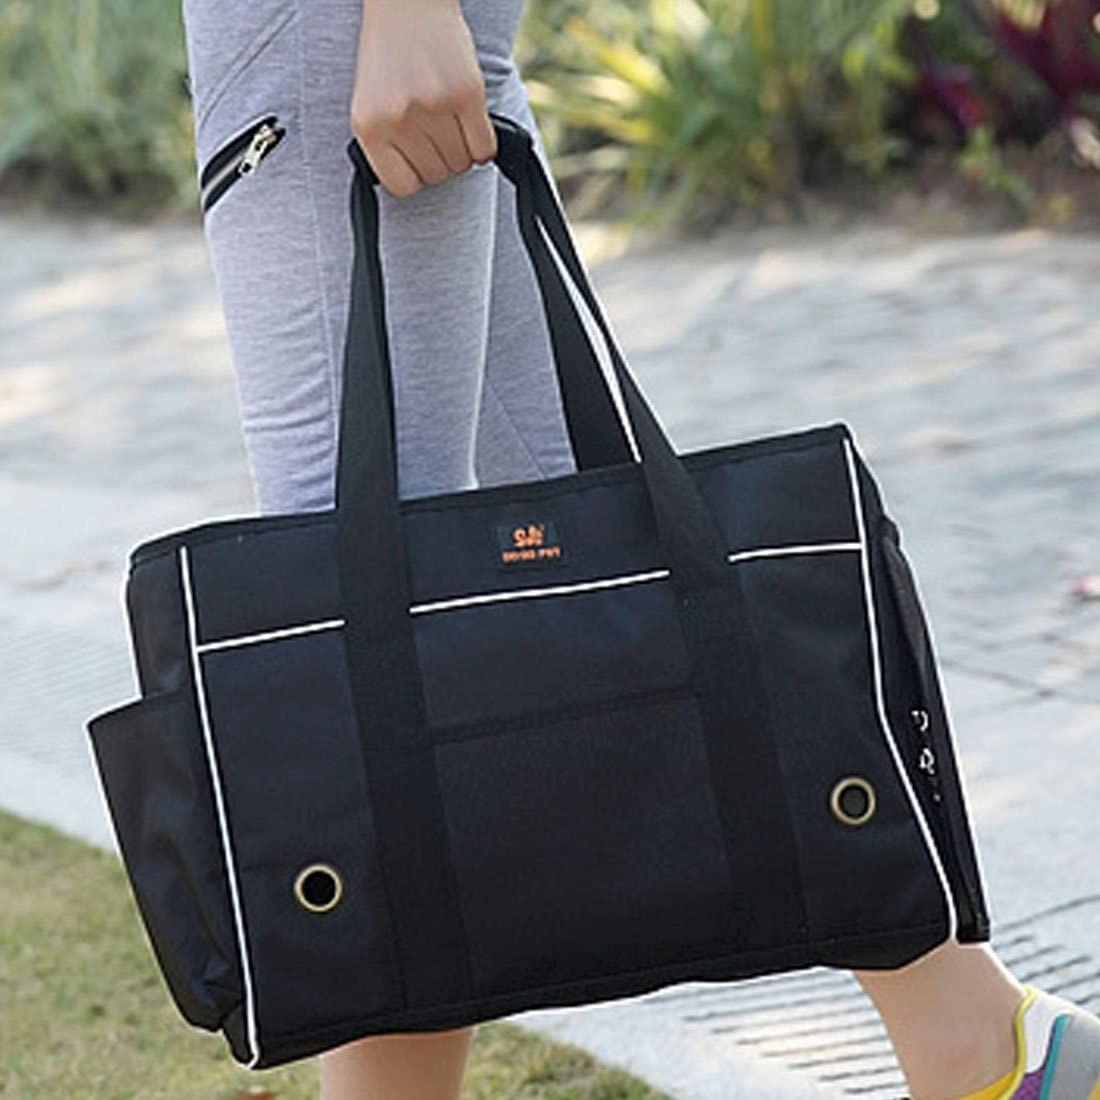 Your only family Pet Lovely Pretty Beautiful Fashion Comfortable Portable Pet Handbag Shoulder Bag for Cat/Dog and oher Pets Large, Size:492035cm Convenience